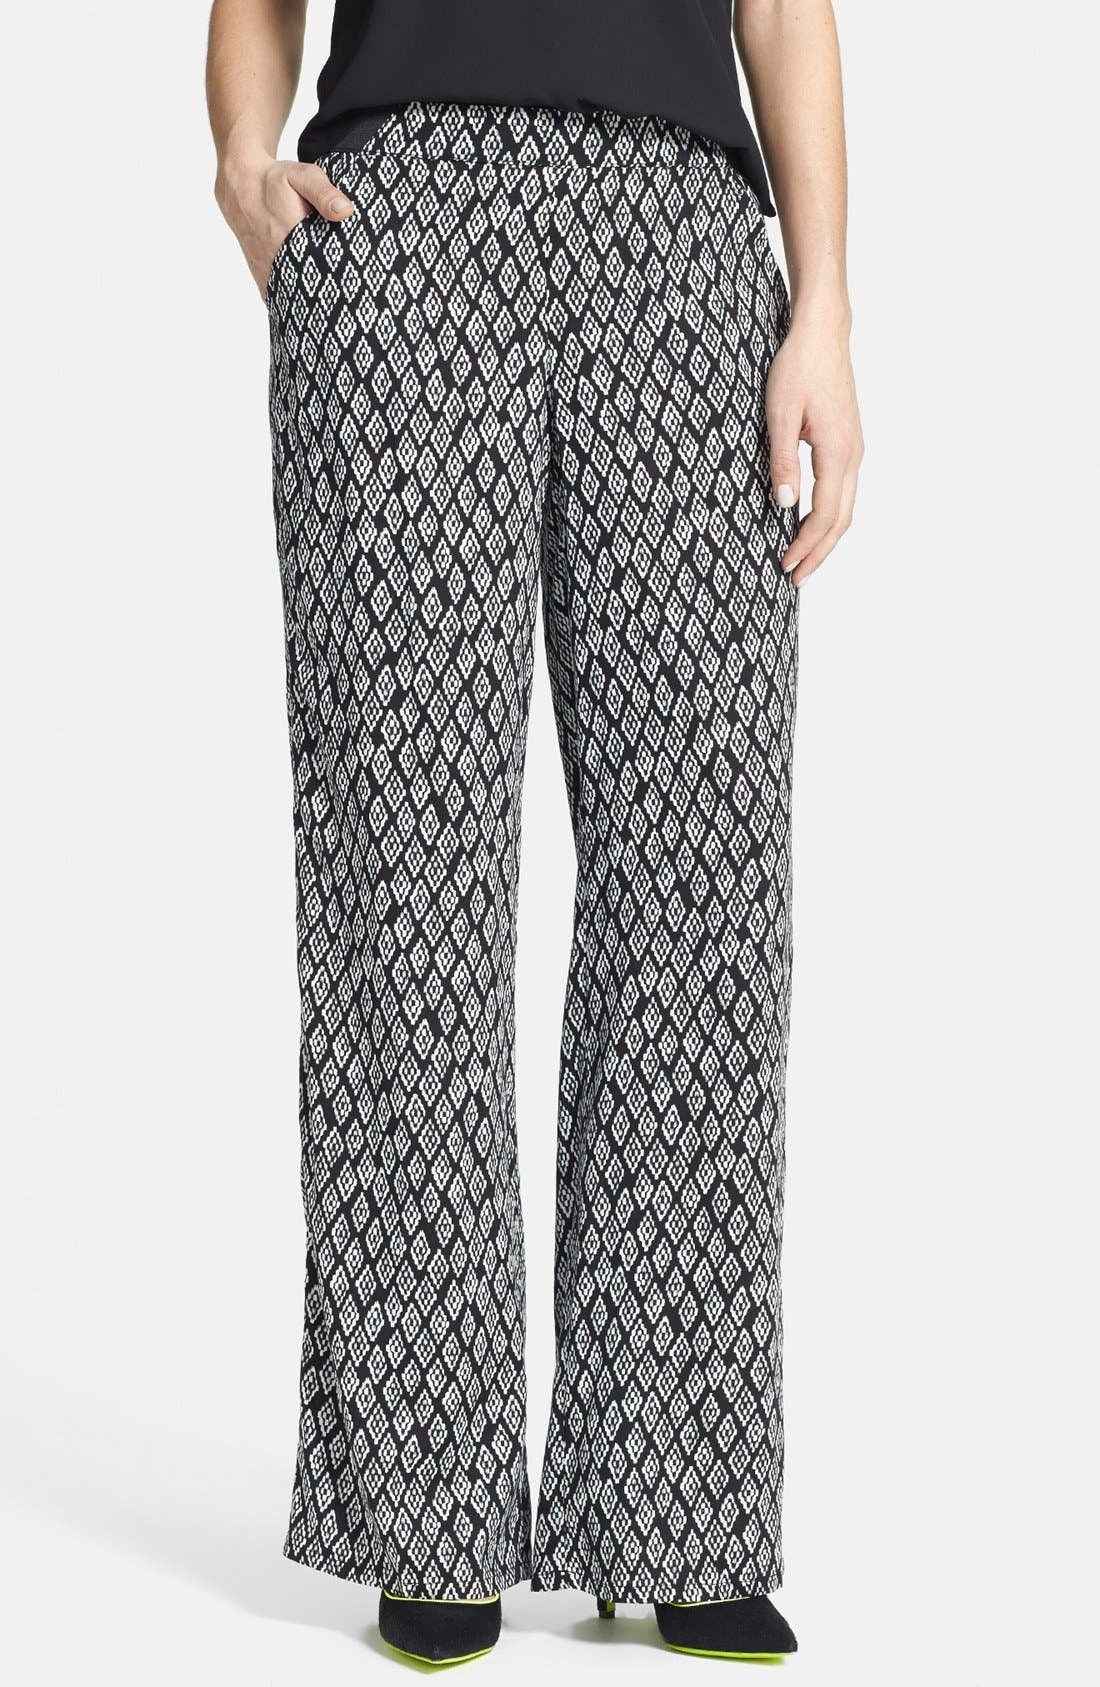 Alternate Image 1 Selected - Jolt Print Palazzo Pants (Juniors) (Online Only)